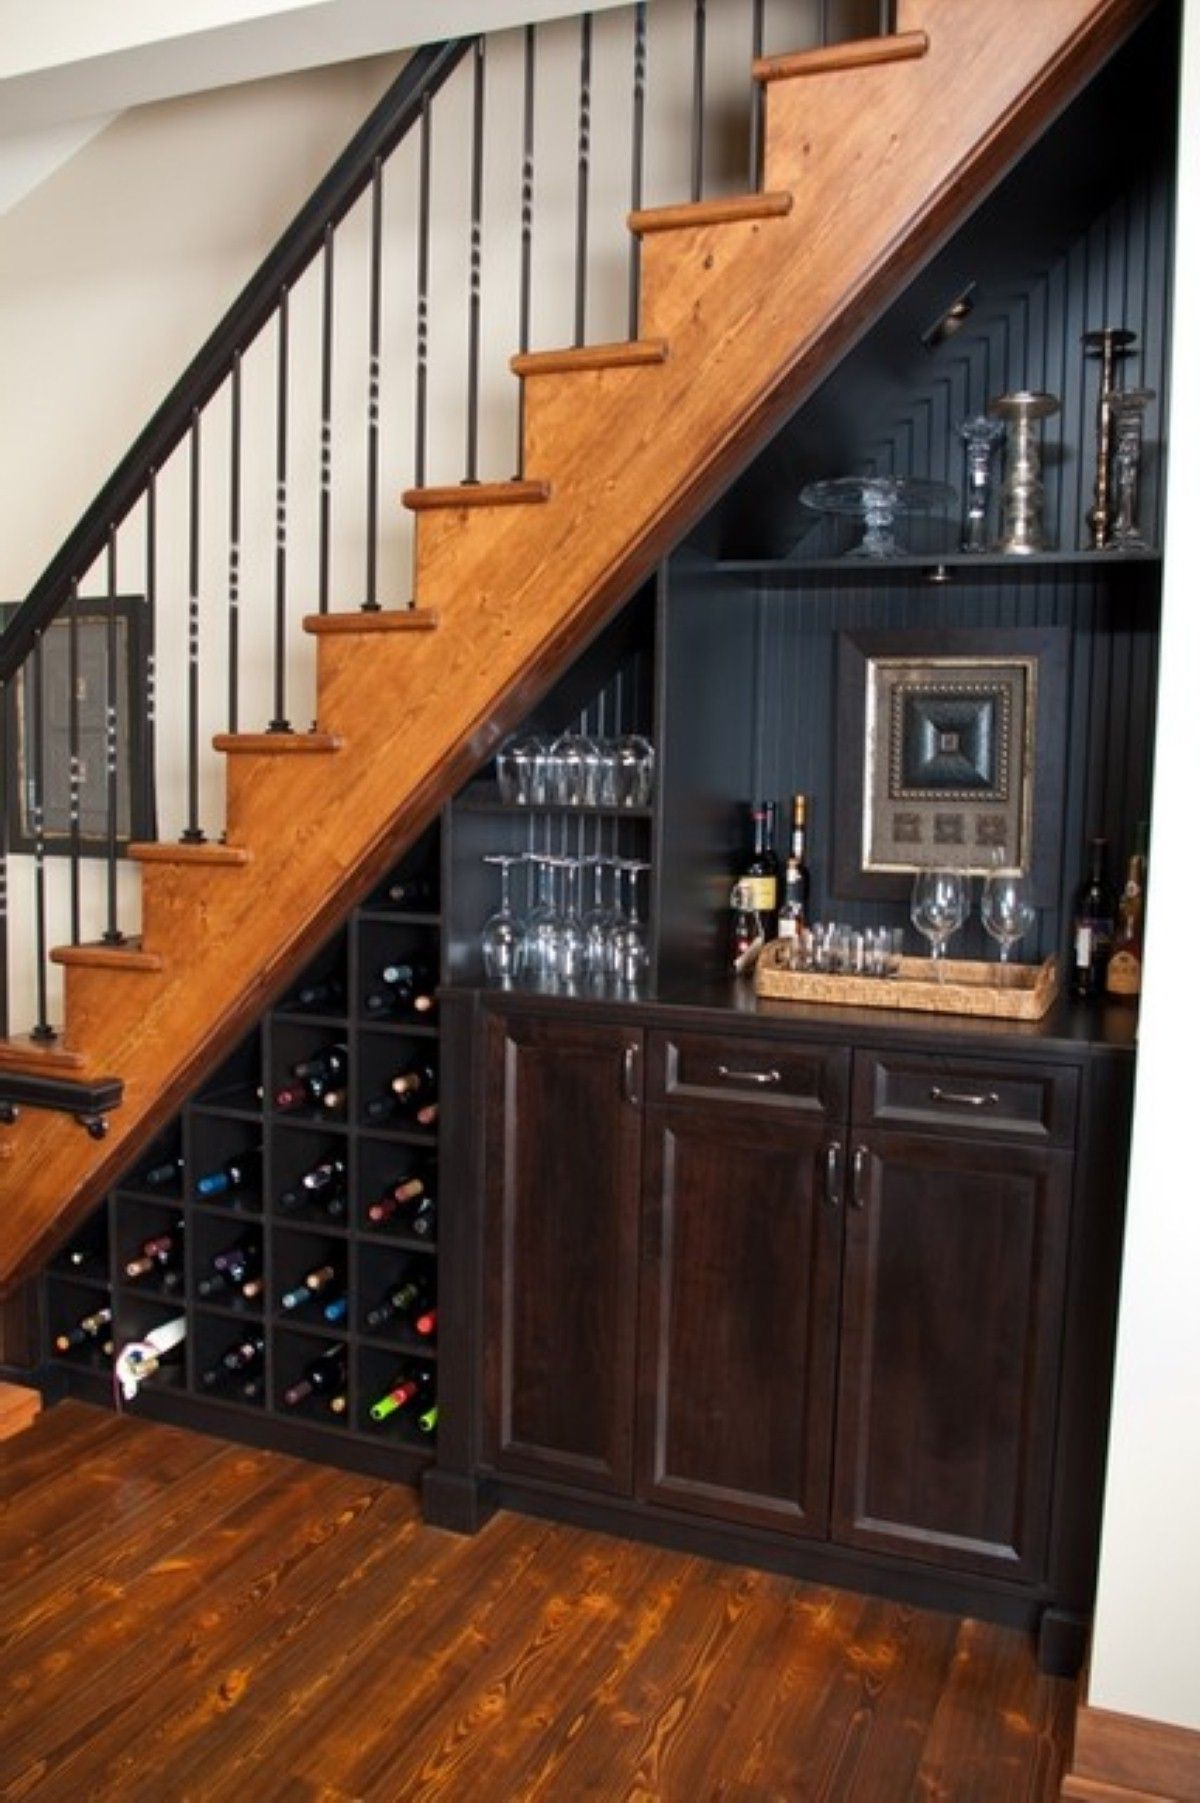 Maximizing limited space in awesome way with mini bar under stairs stairs pinterest - Stairs in a small space model ...